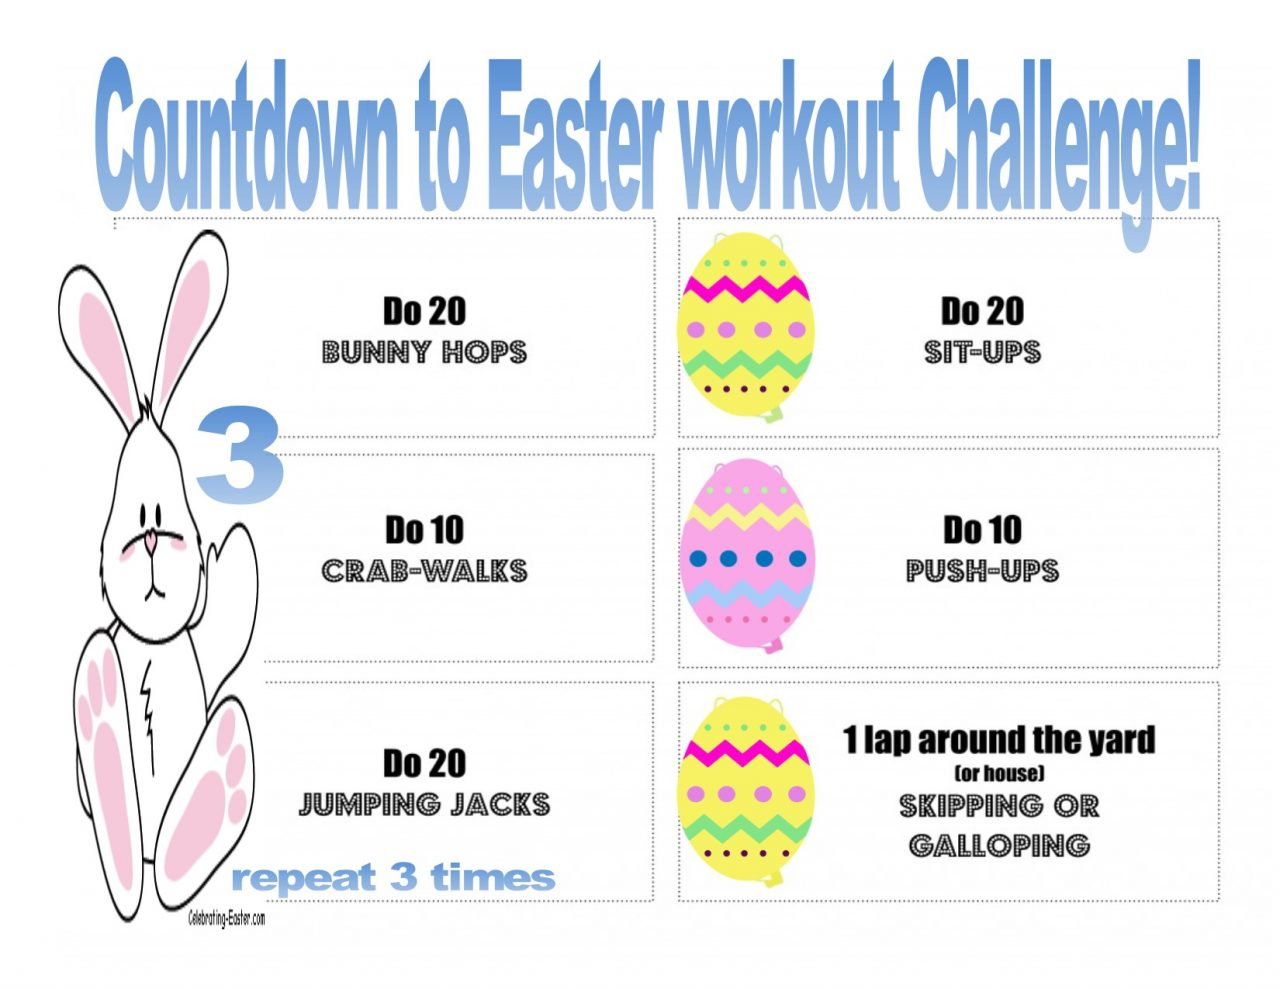 day-3-countdown-to-Easter-pg1-1280x989.jpg